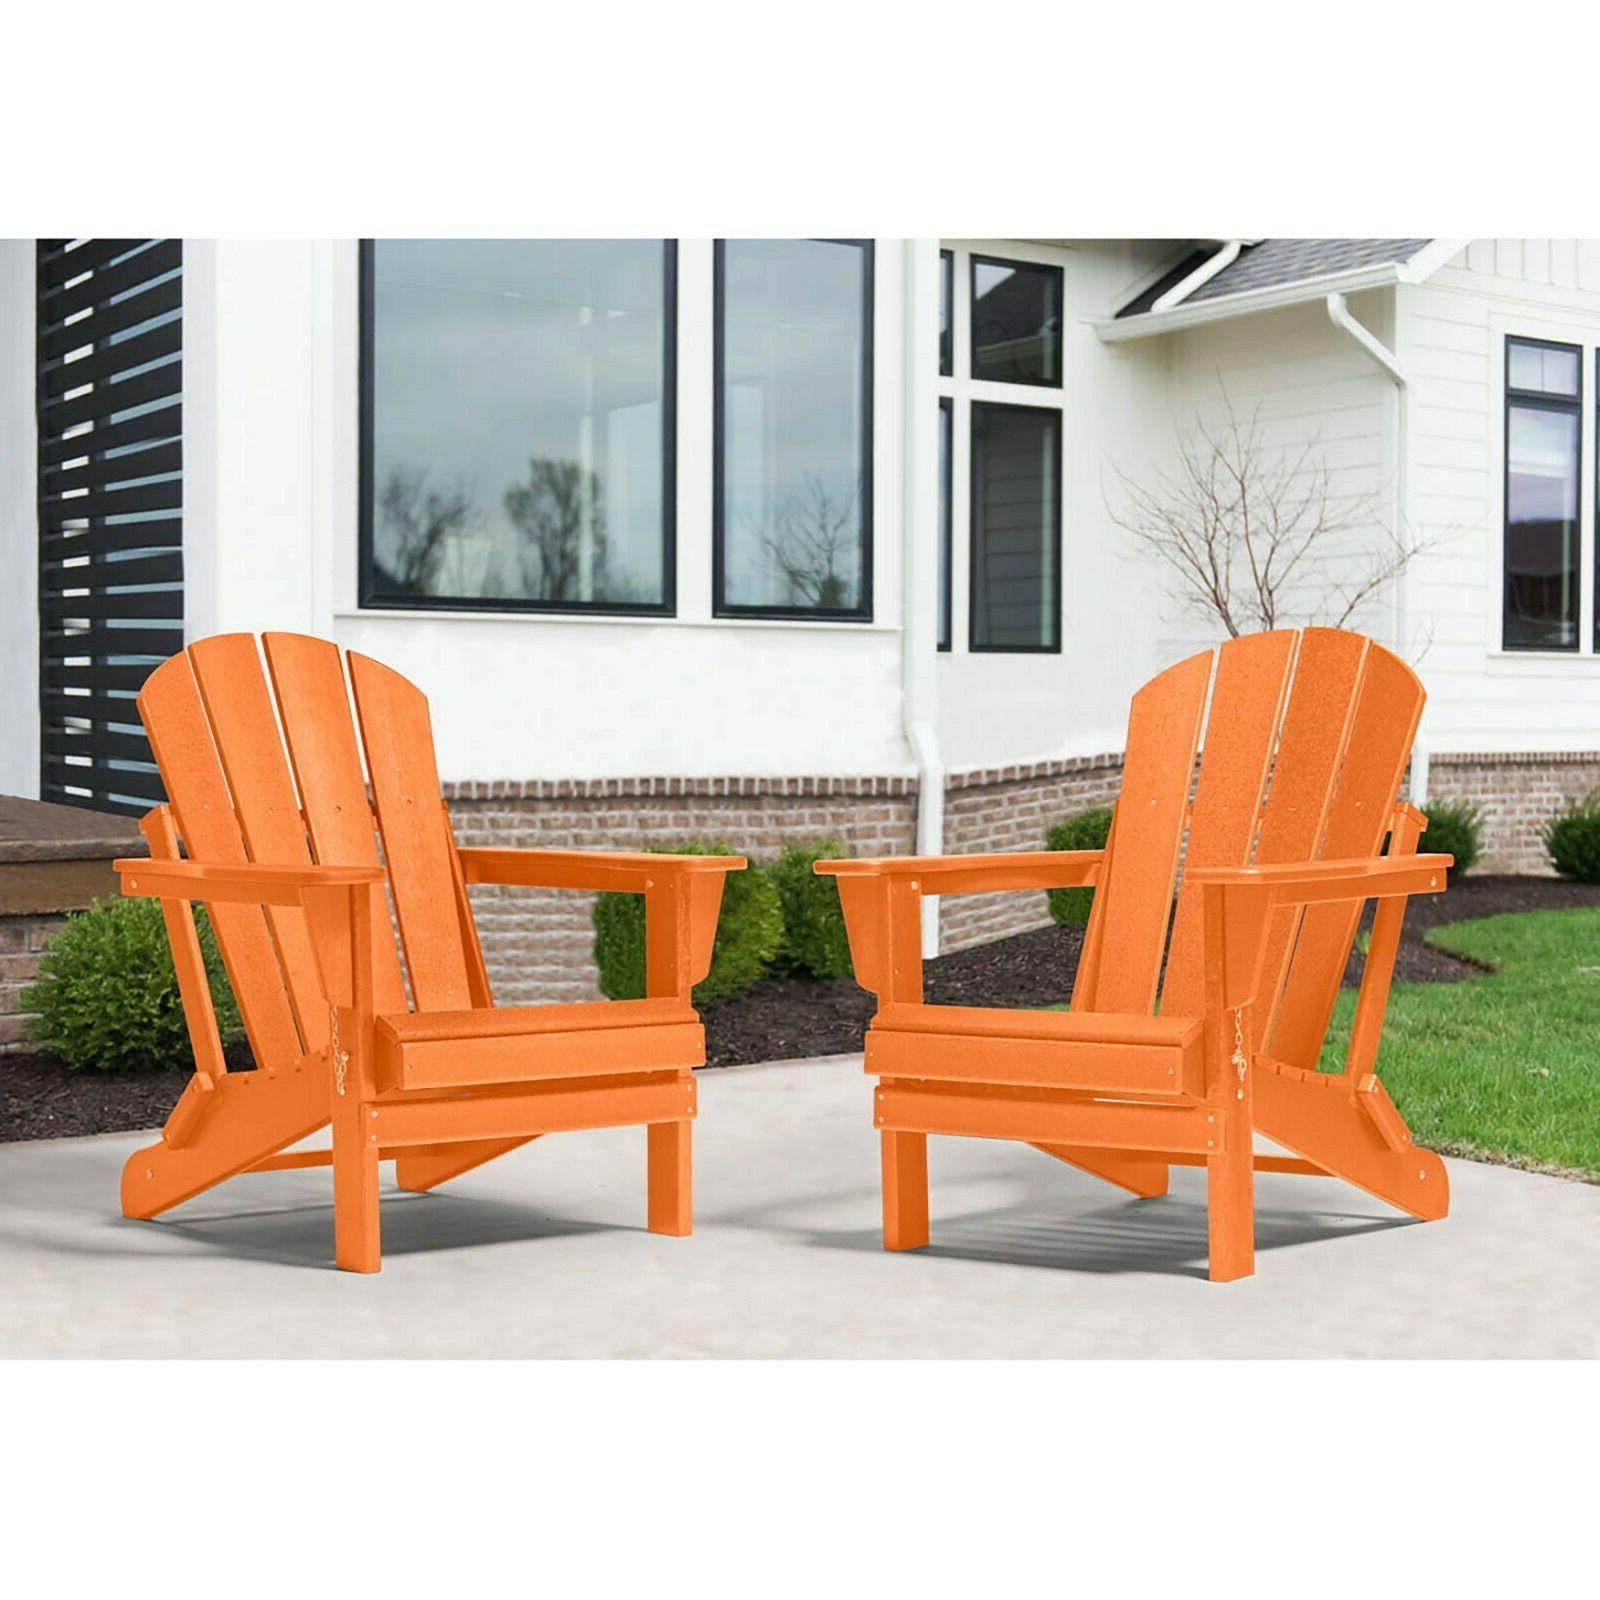 2 WestinTrends Outdoor Adirondack Chairs Plastic Lounger